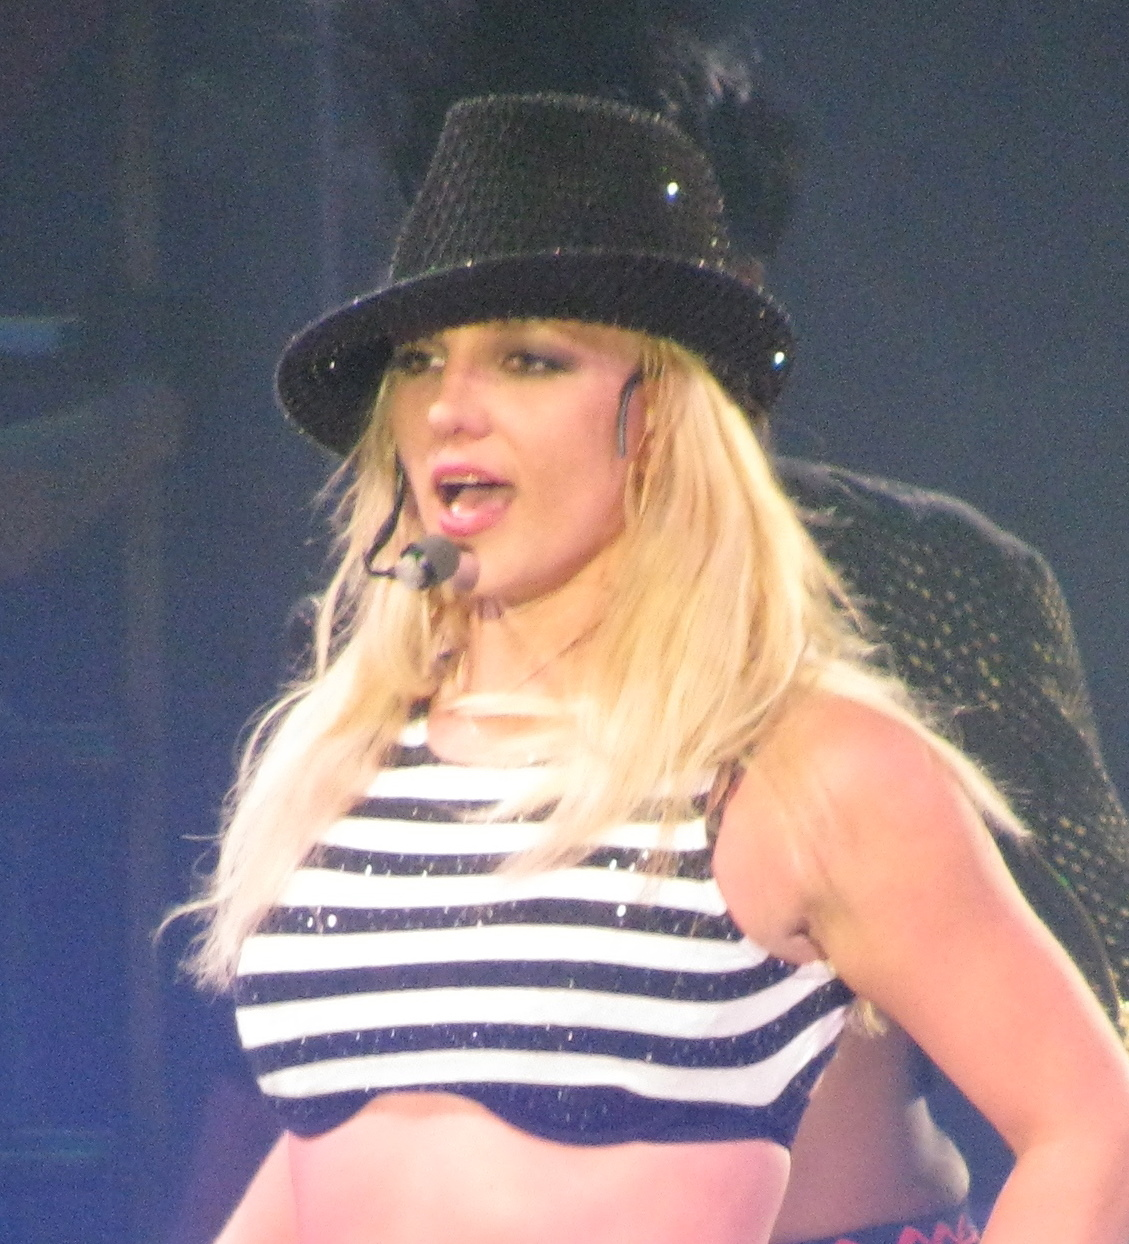 File:Baby One More Time 2009.jpg - Wikimedia Commons Britney Spears Circus